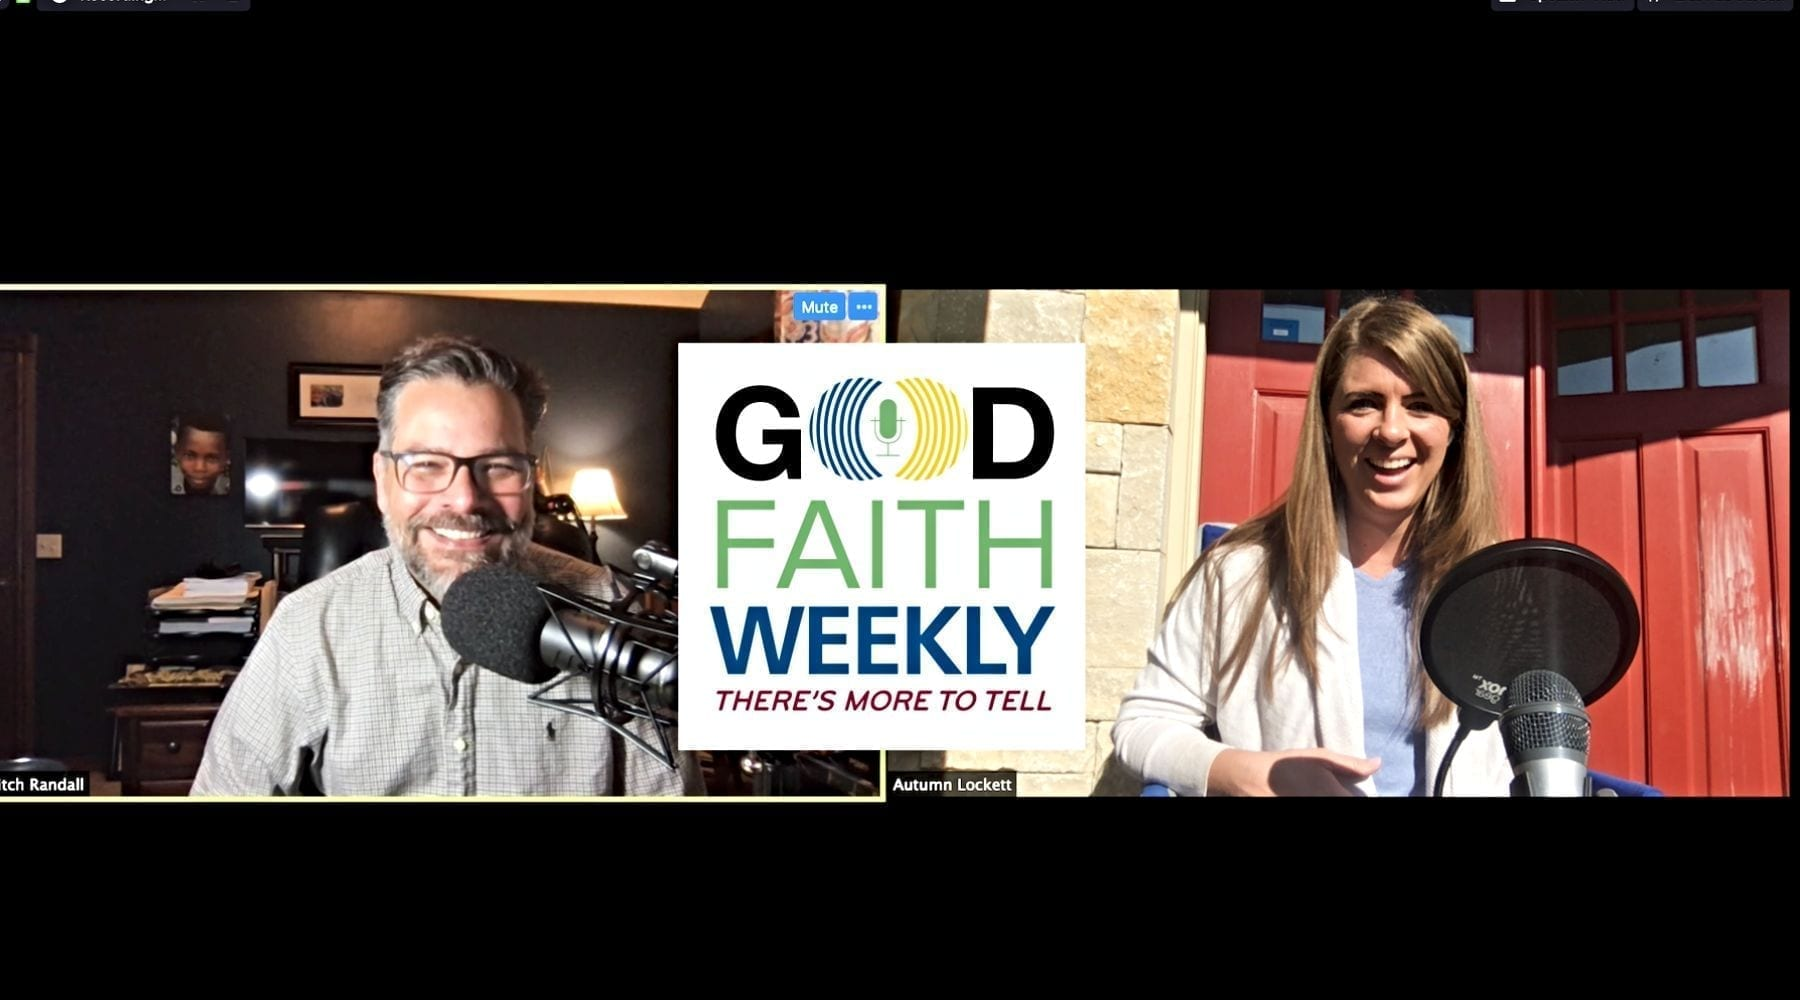 Good Faith Weekly Podcast Launches Ahead of Schedule